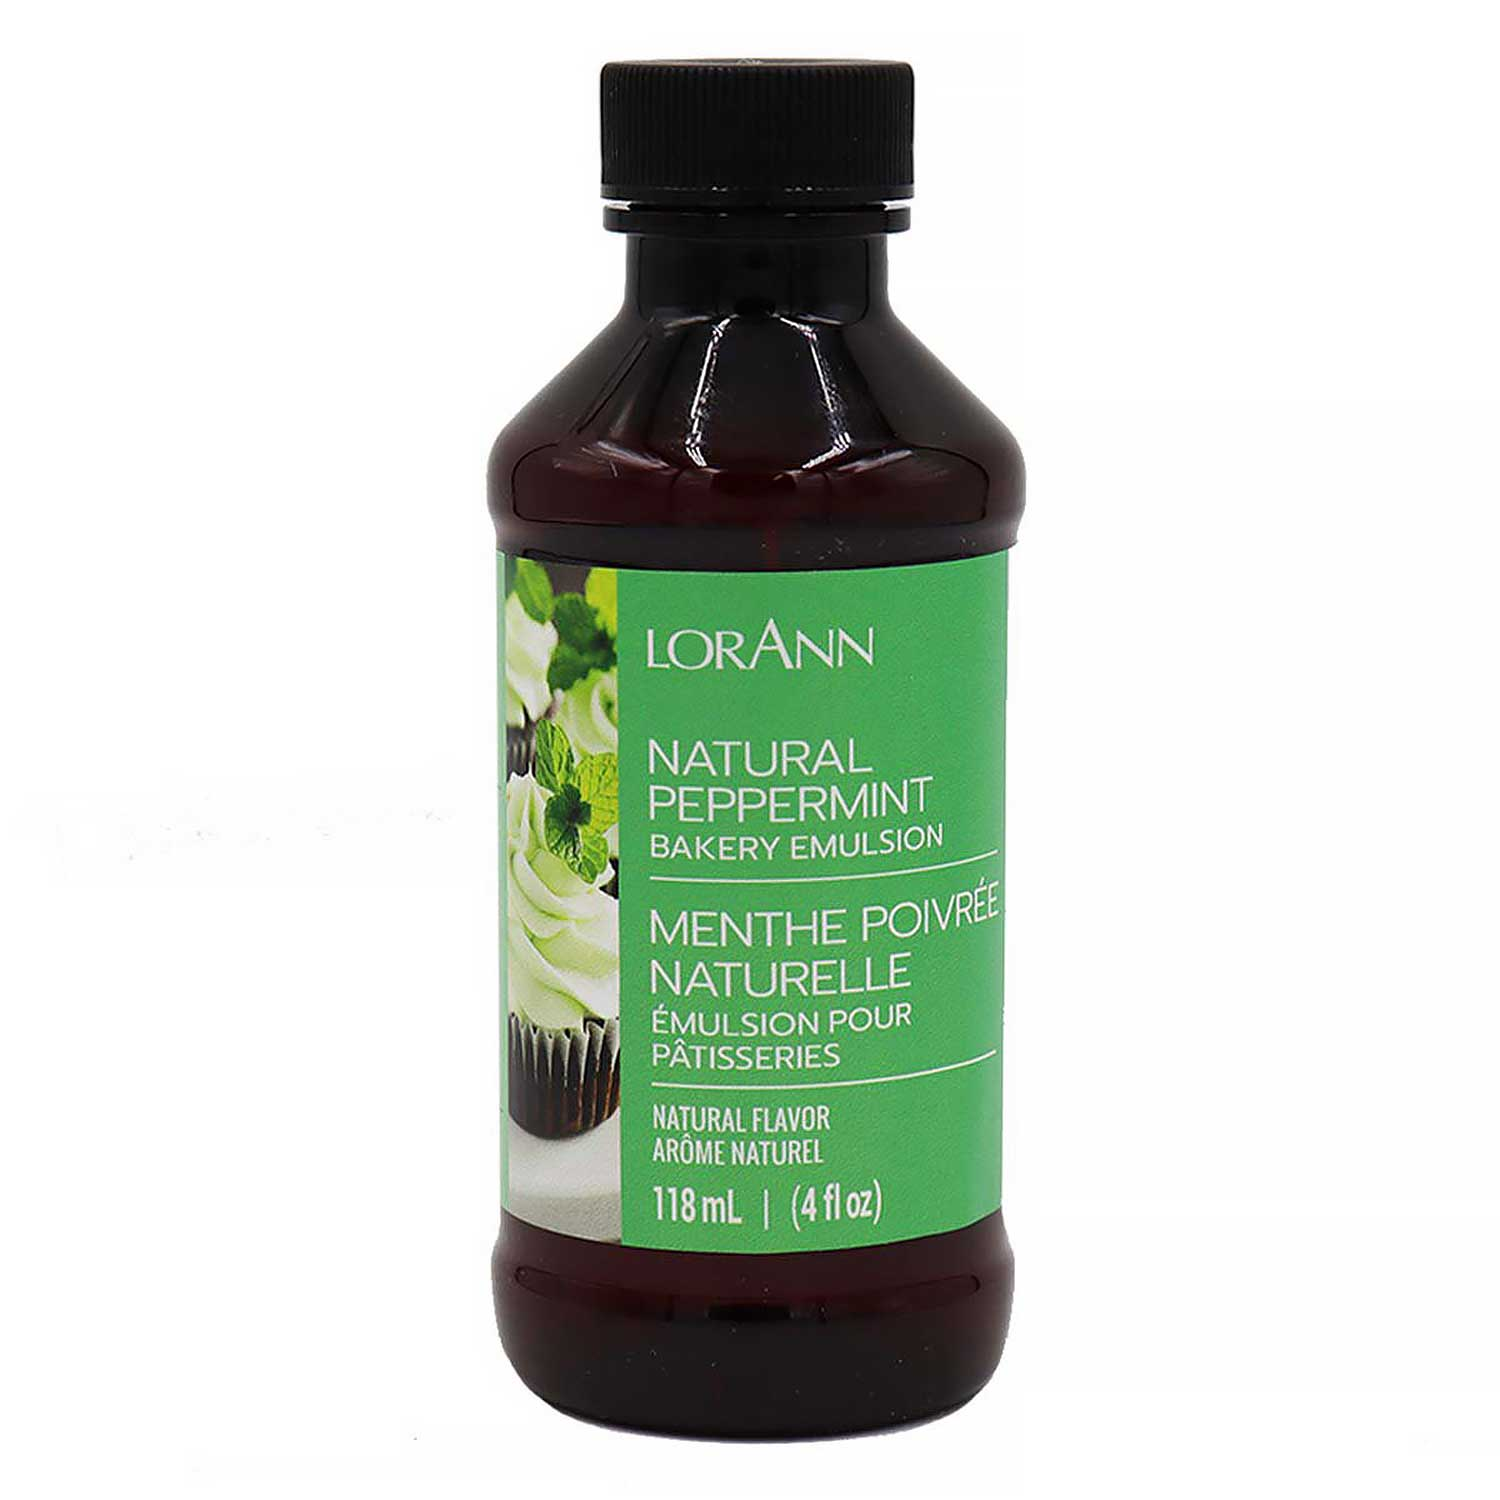 Peppermint Bakery Emulsion